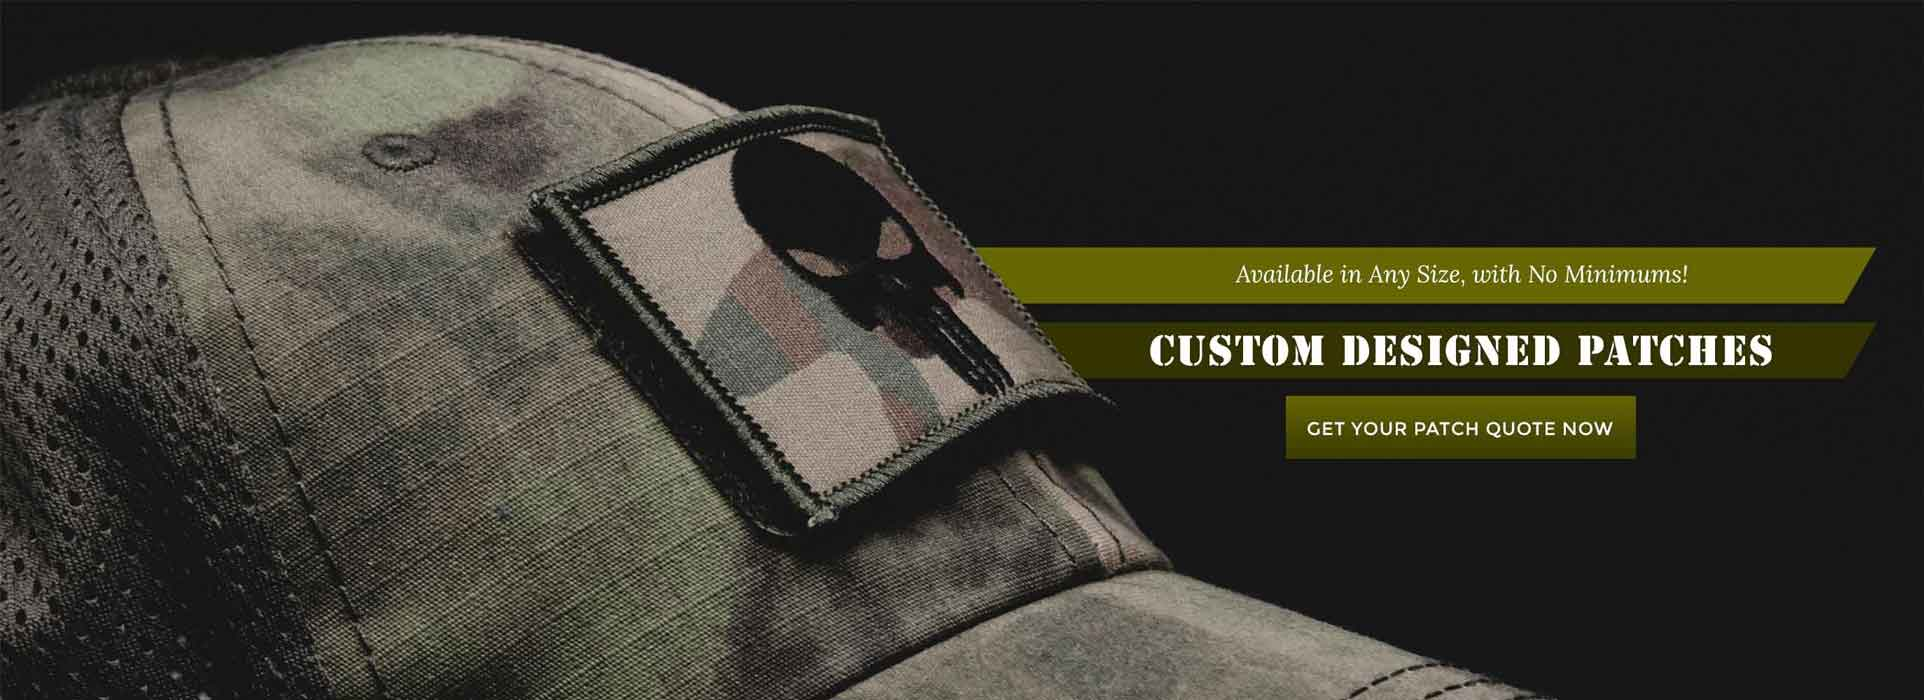 Tactical Gear Junkie Morale Patch Manufacturer | Tactical Gear Junkie